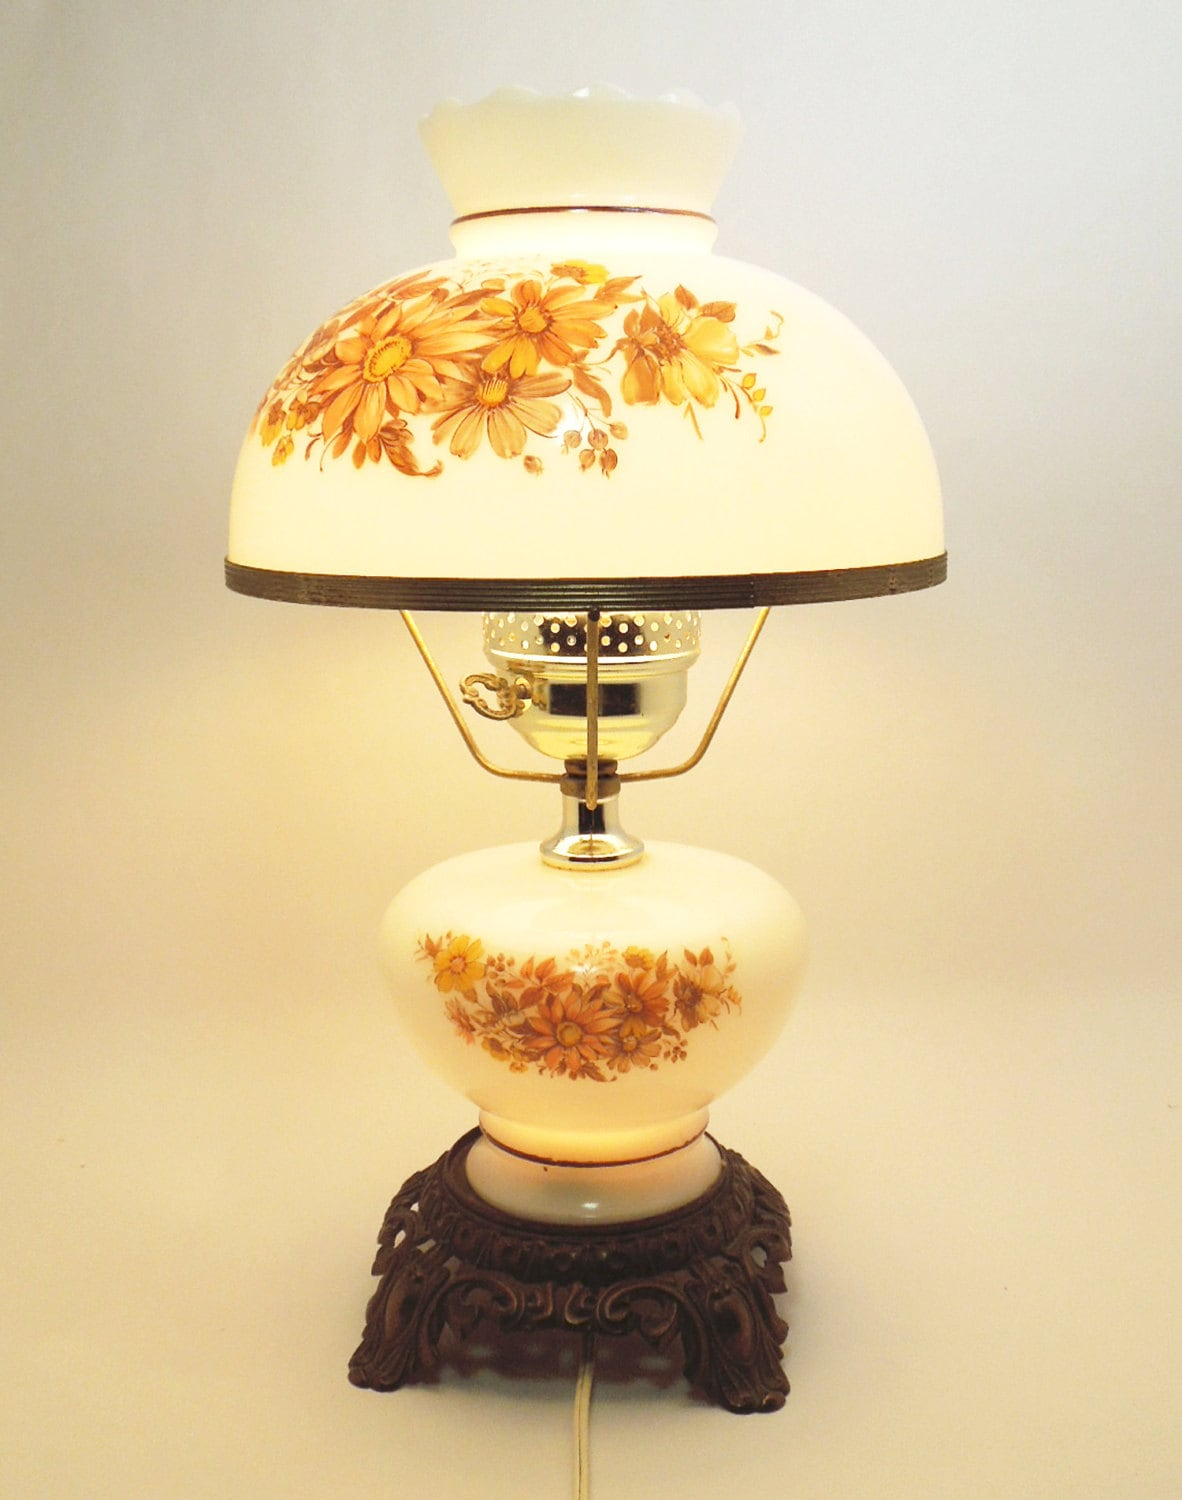 Vintage hurricane lamp and night light with hand-painted